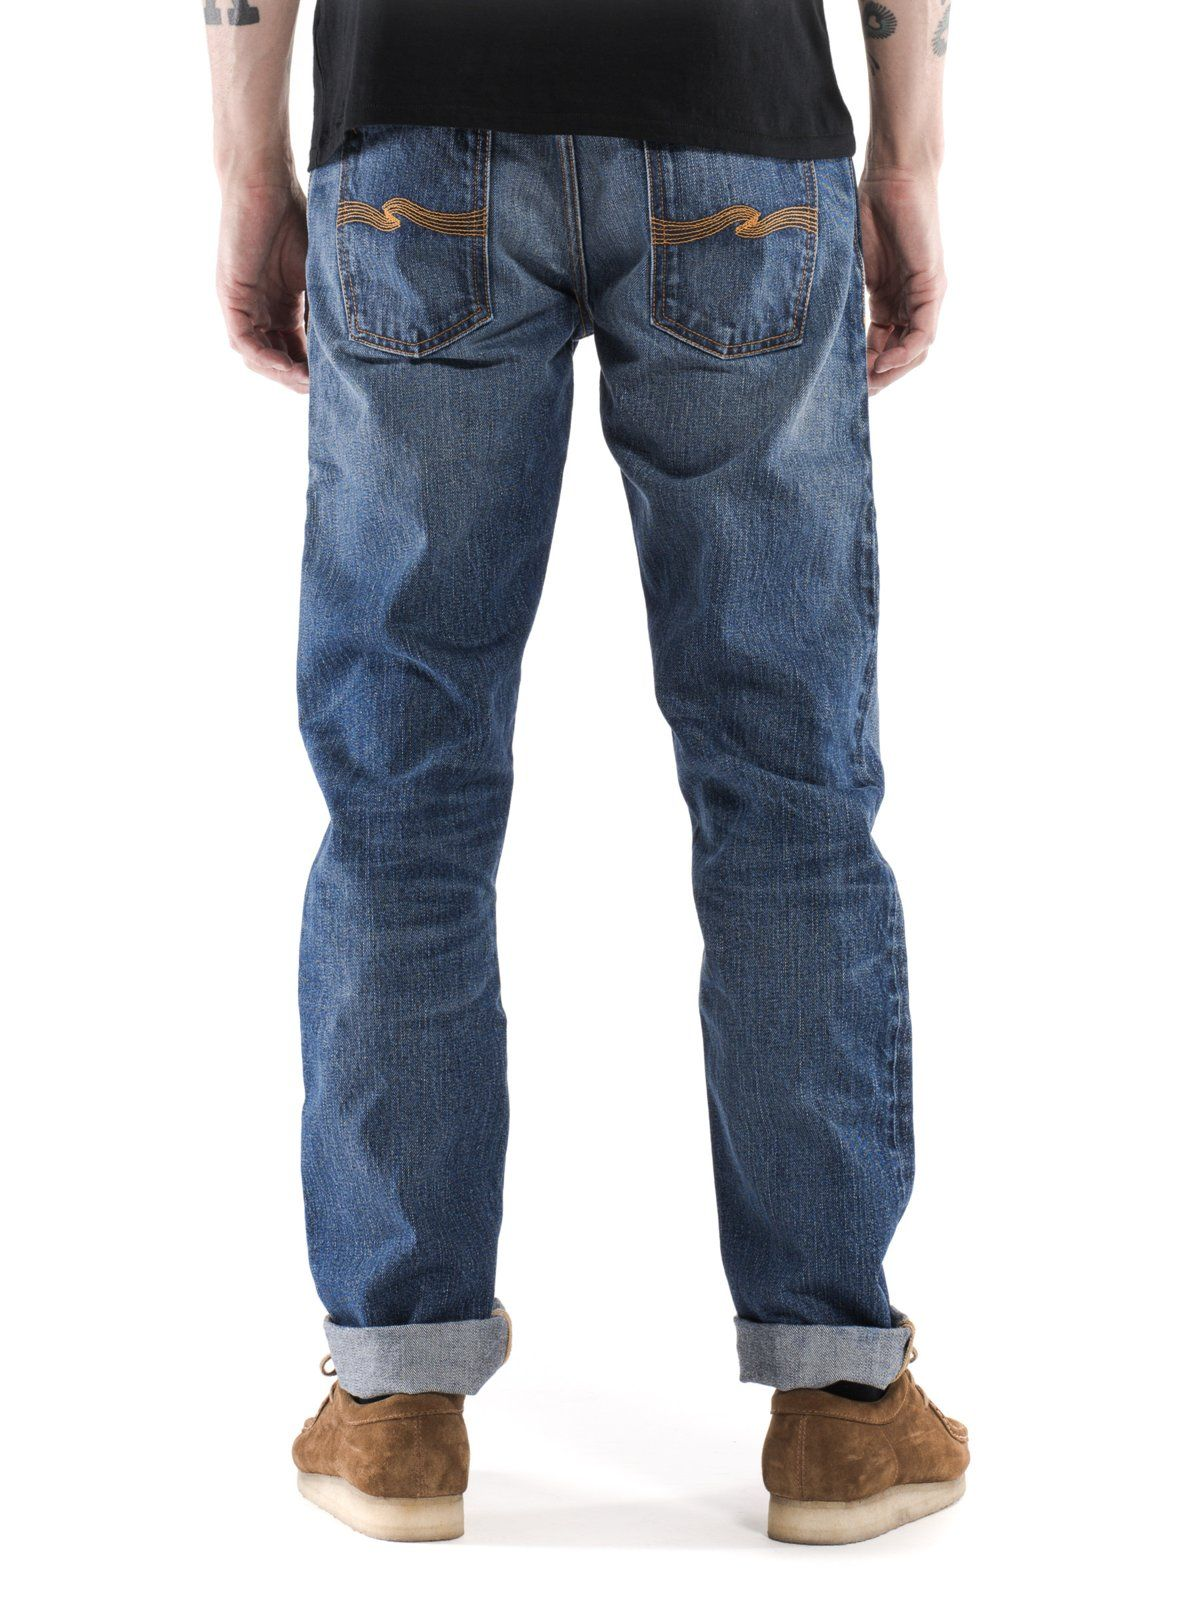 Nudie Jeans is the Naked Truth About Denim. Our line of jeans range from tight and slim to regular fits, all available in dry denim, black denim and pre-washed denim.